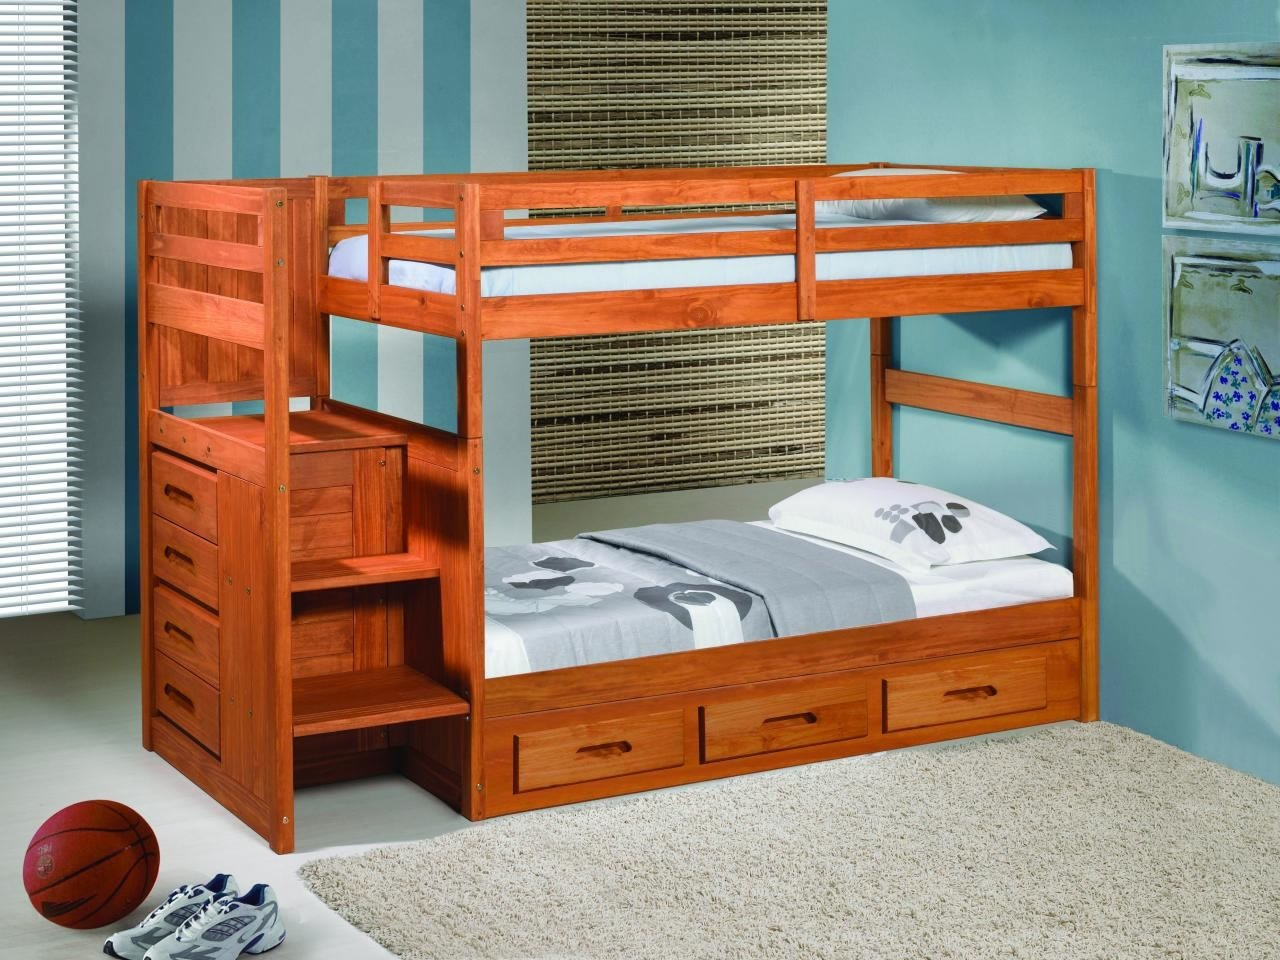 kids double bunk bed - Home Design And Decor